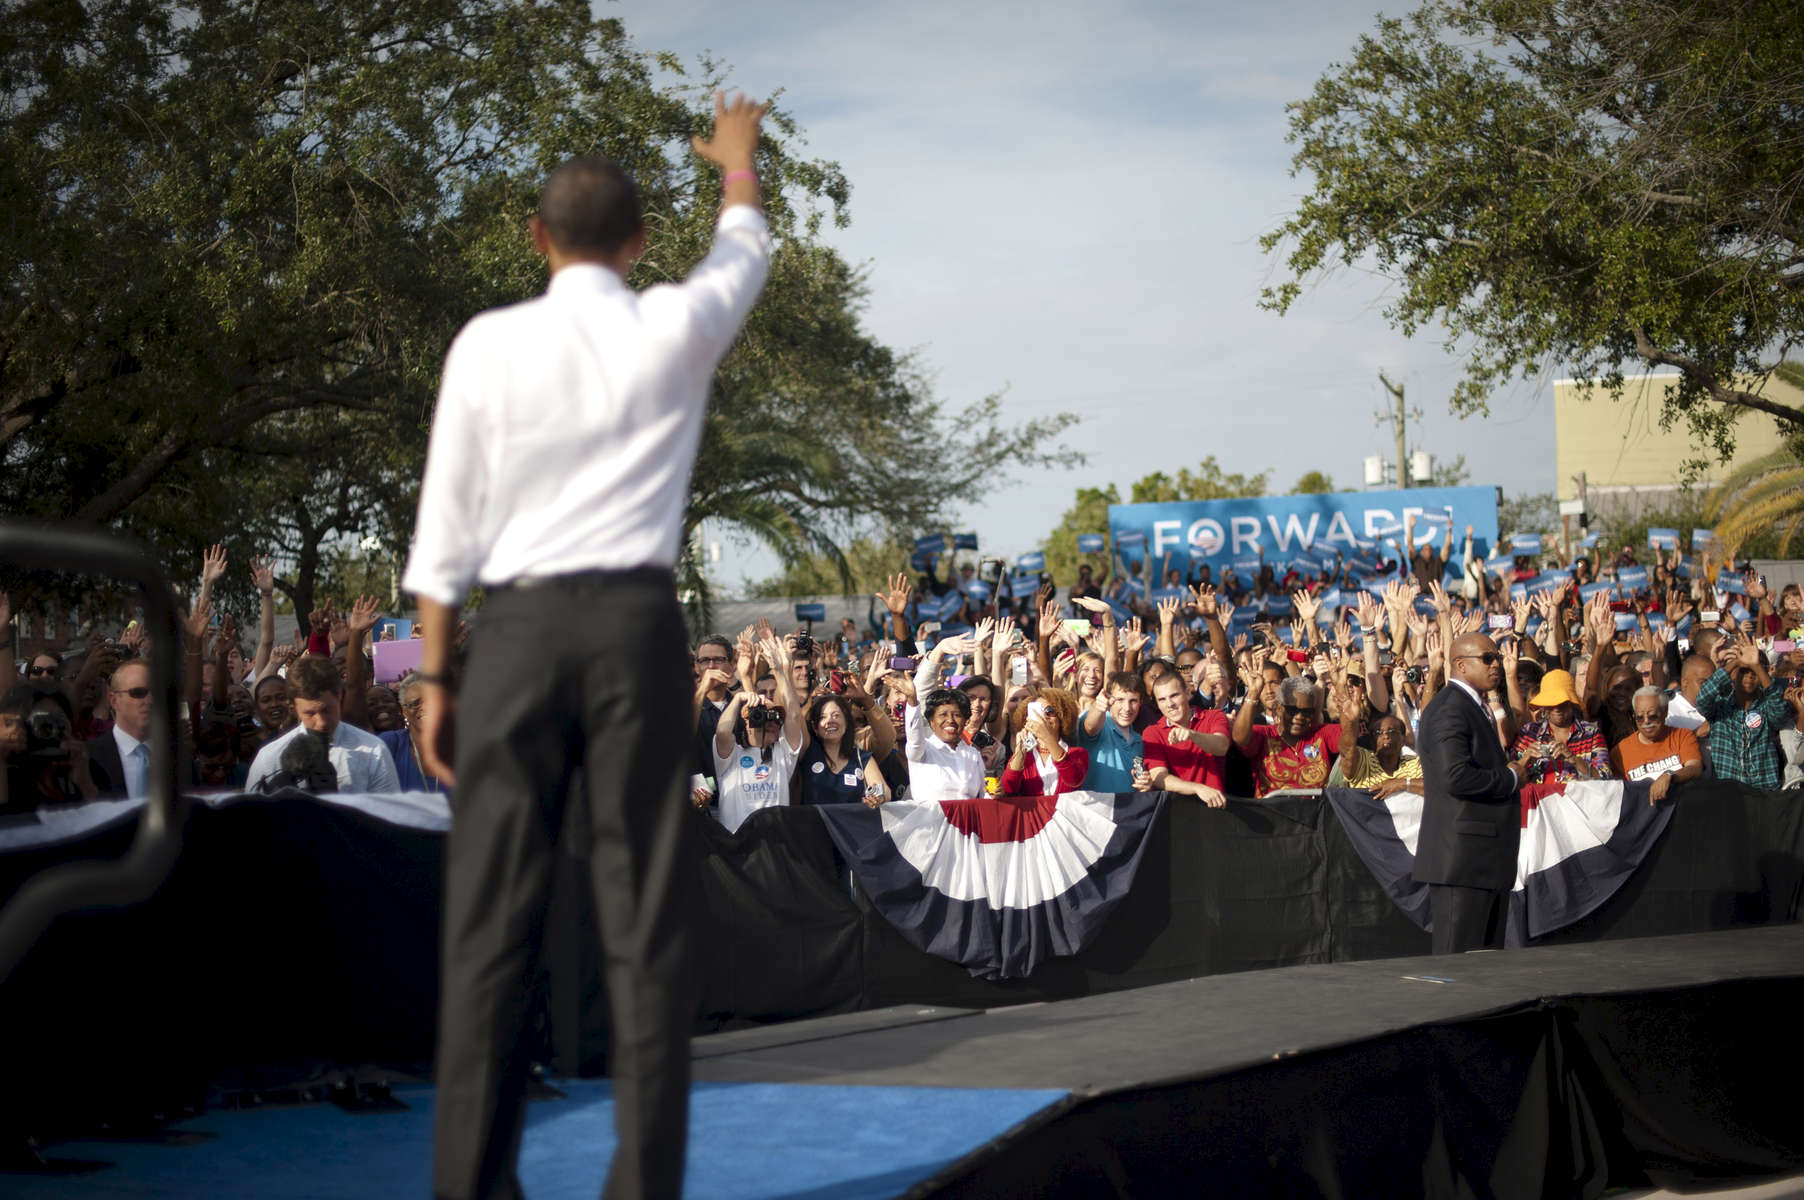 October 25, 2012 - Tampa, FL:  President Barack Obama waves to supporters after a rally in Tampa's Centennial Park during a 48 hour straight swing of campaign events. (Scout Tufankjian for Obama for America/Polaris)